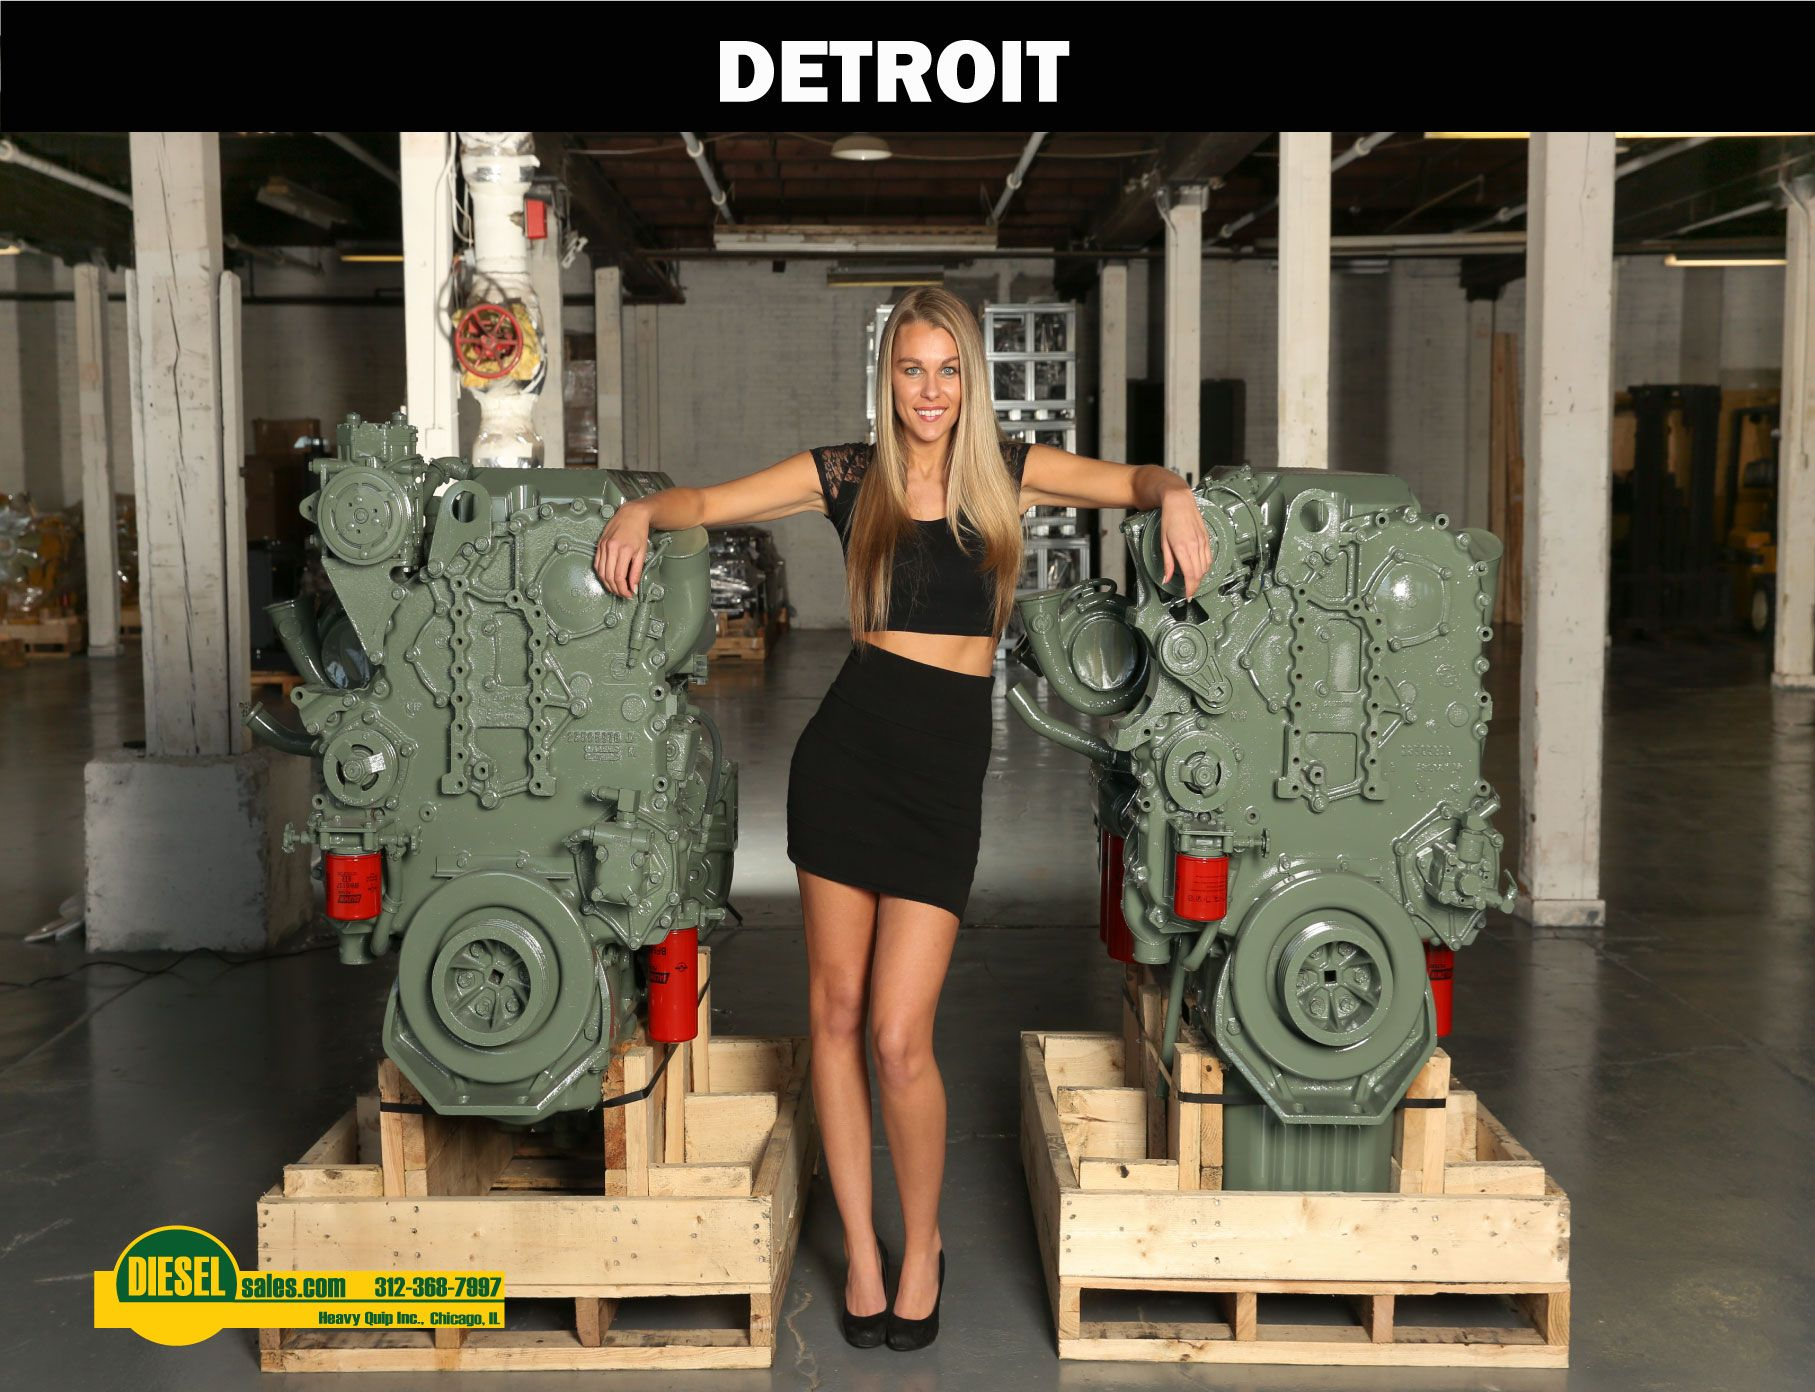 detroit diesel series 60 manual